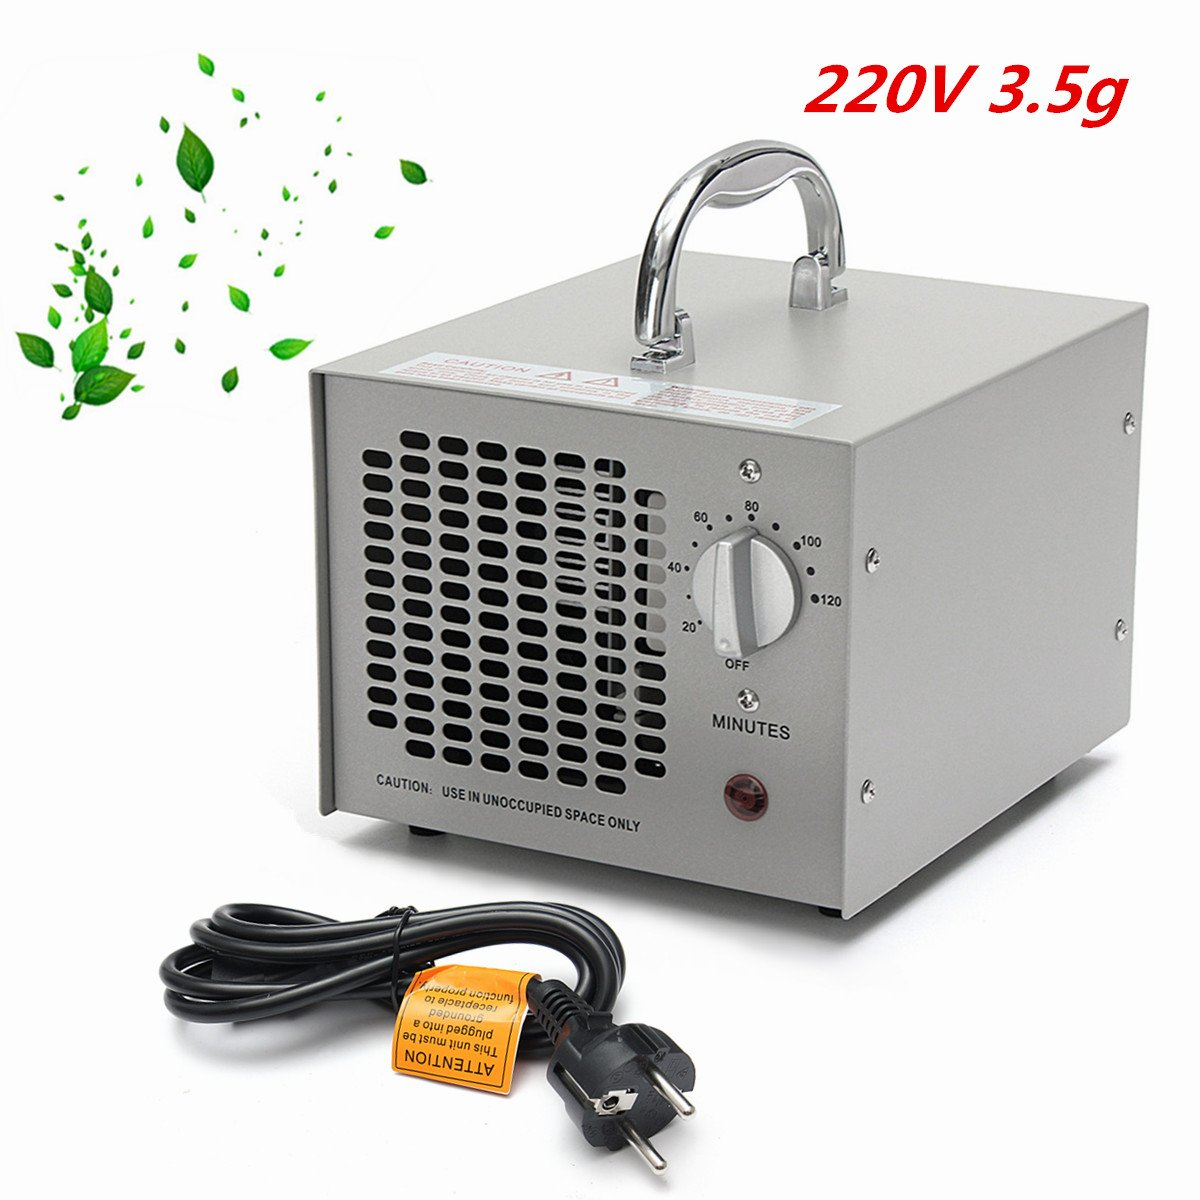 220V 3500mg Commercial Industrial Ozone Generator Air